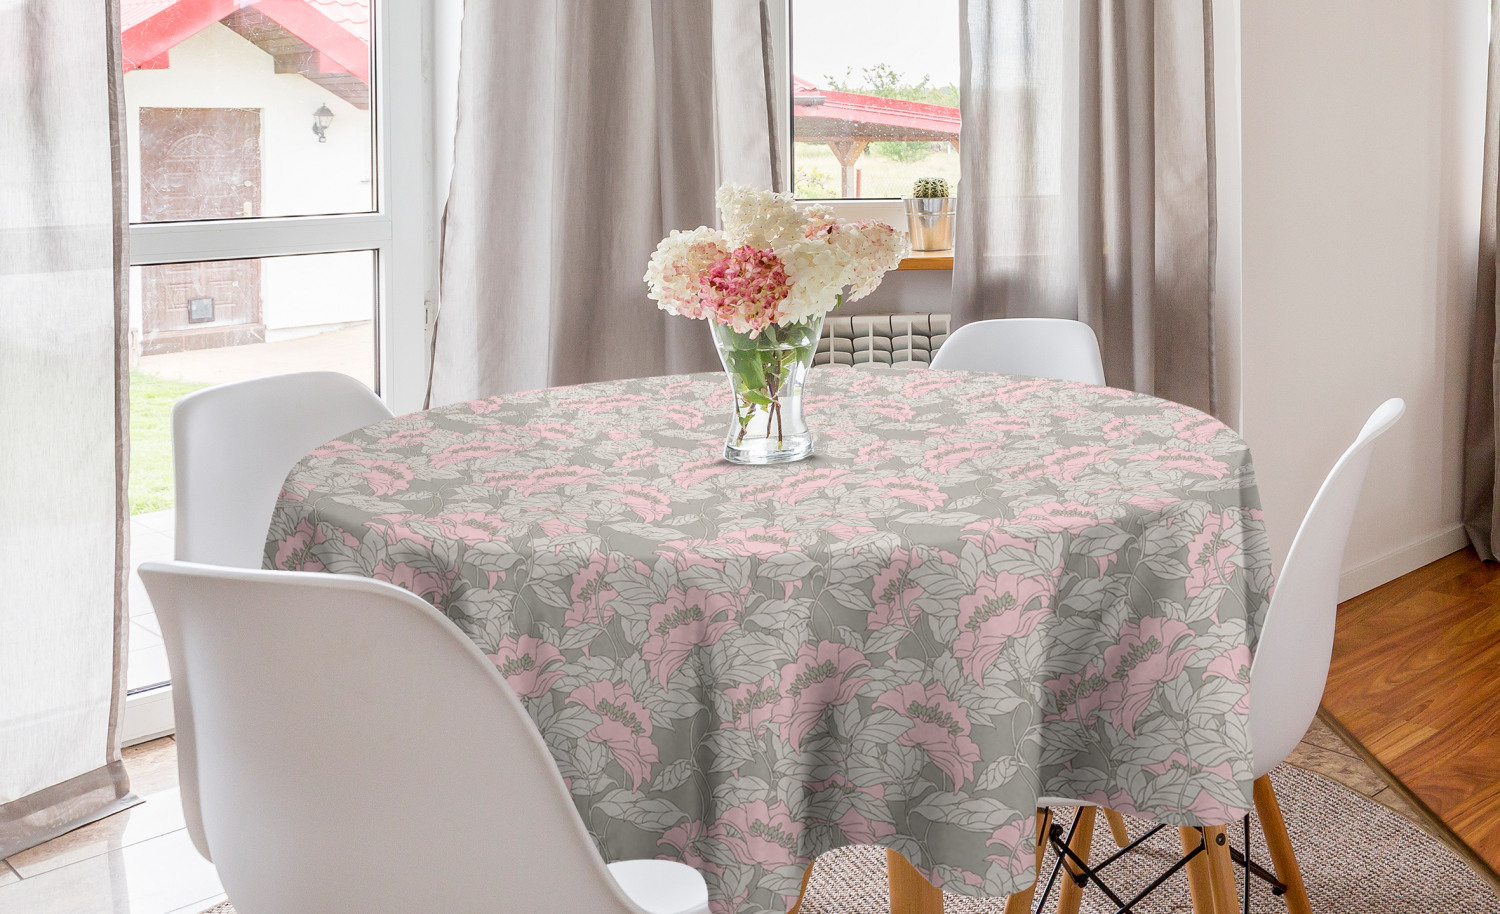 Floral Round Tablecloth Sketch Of Repetitive Colored Poppy Flowers With Greyscale Leaves Art Print Circle Table Cloth Cover For Dining Room Kitchen Decor 60 Pale Taupe And Rose By Ambesonne Walmart Com